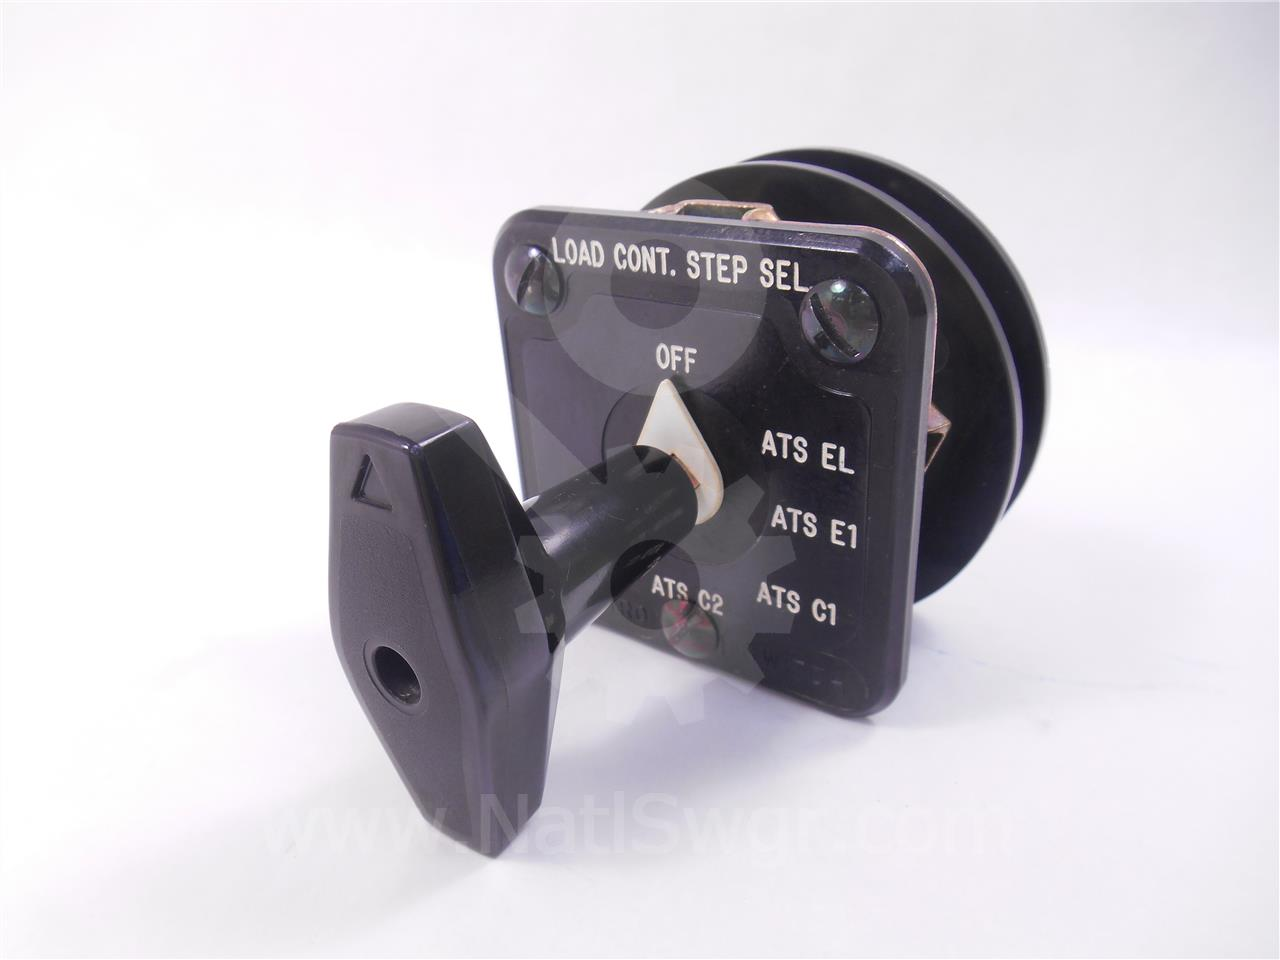 ELECTROSWITCH LOAD CONTROL STEP SELECT